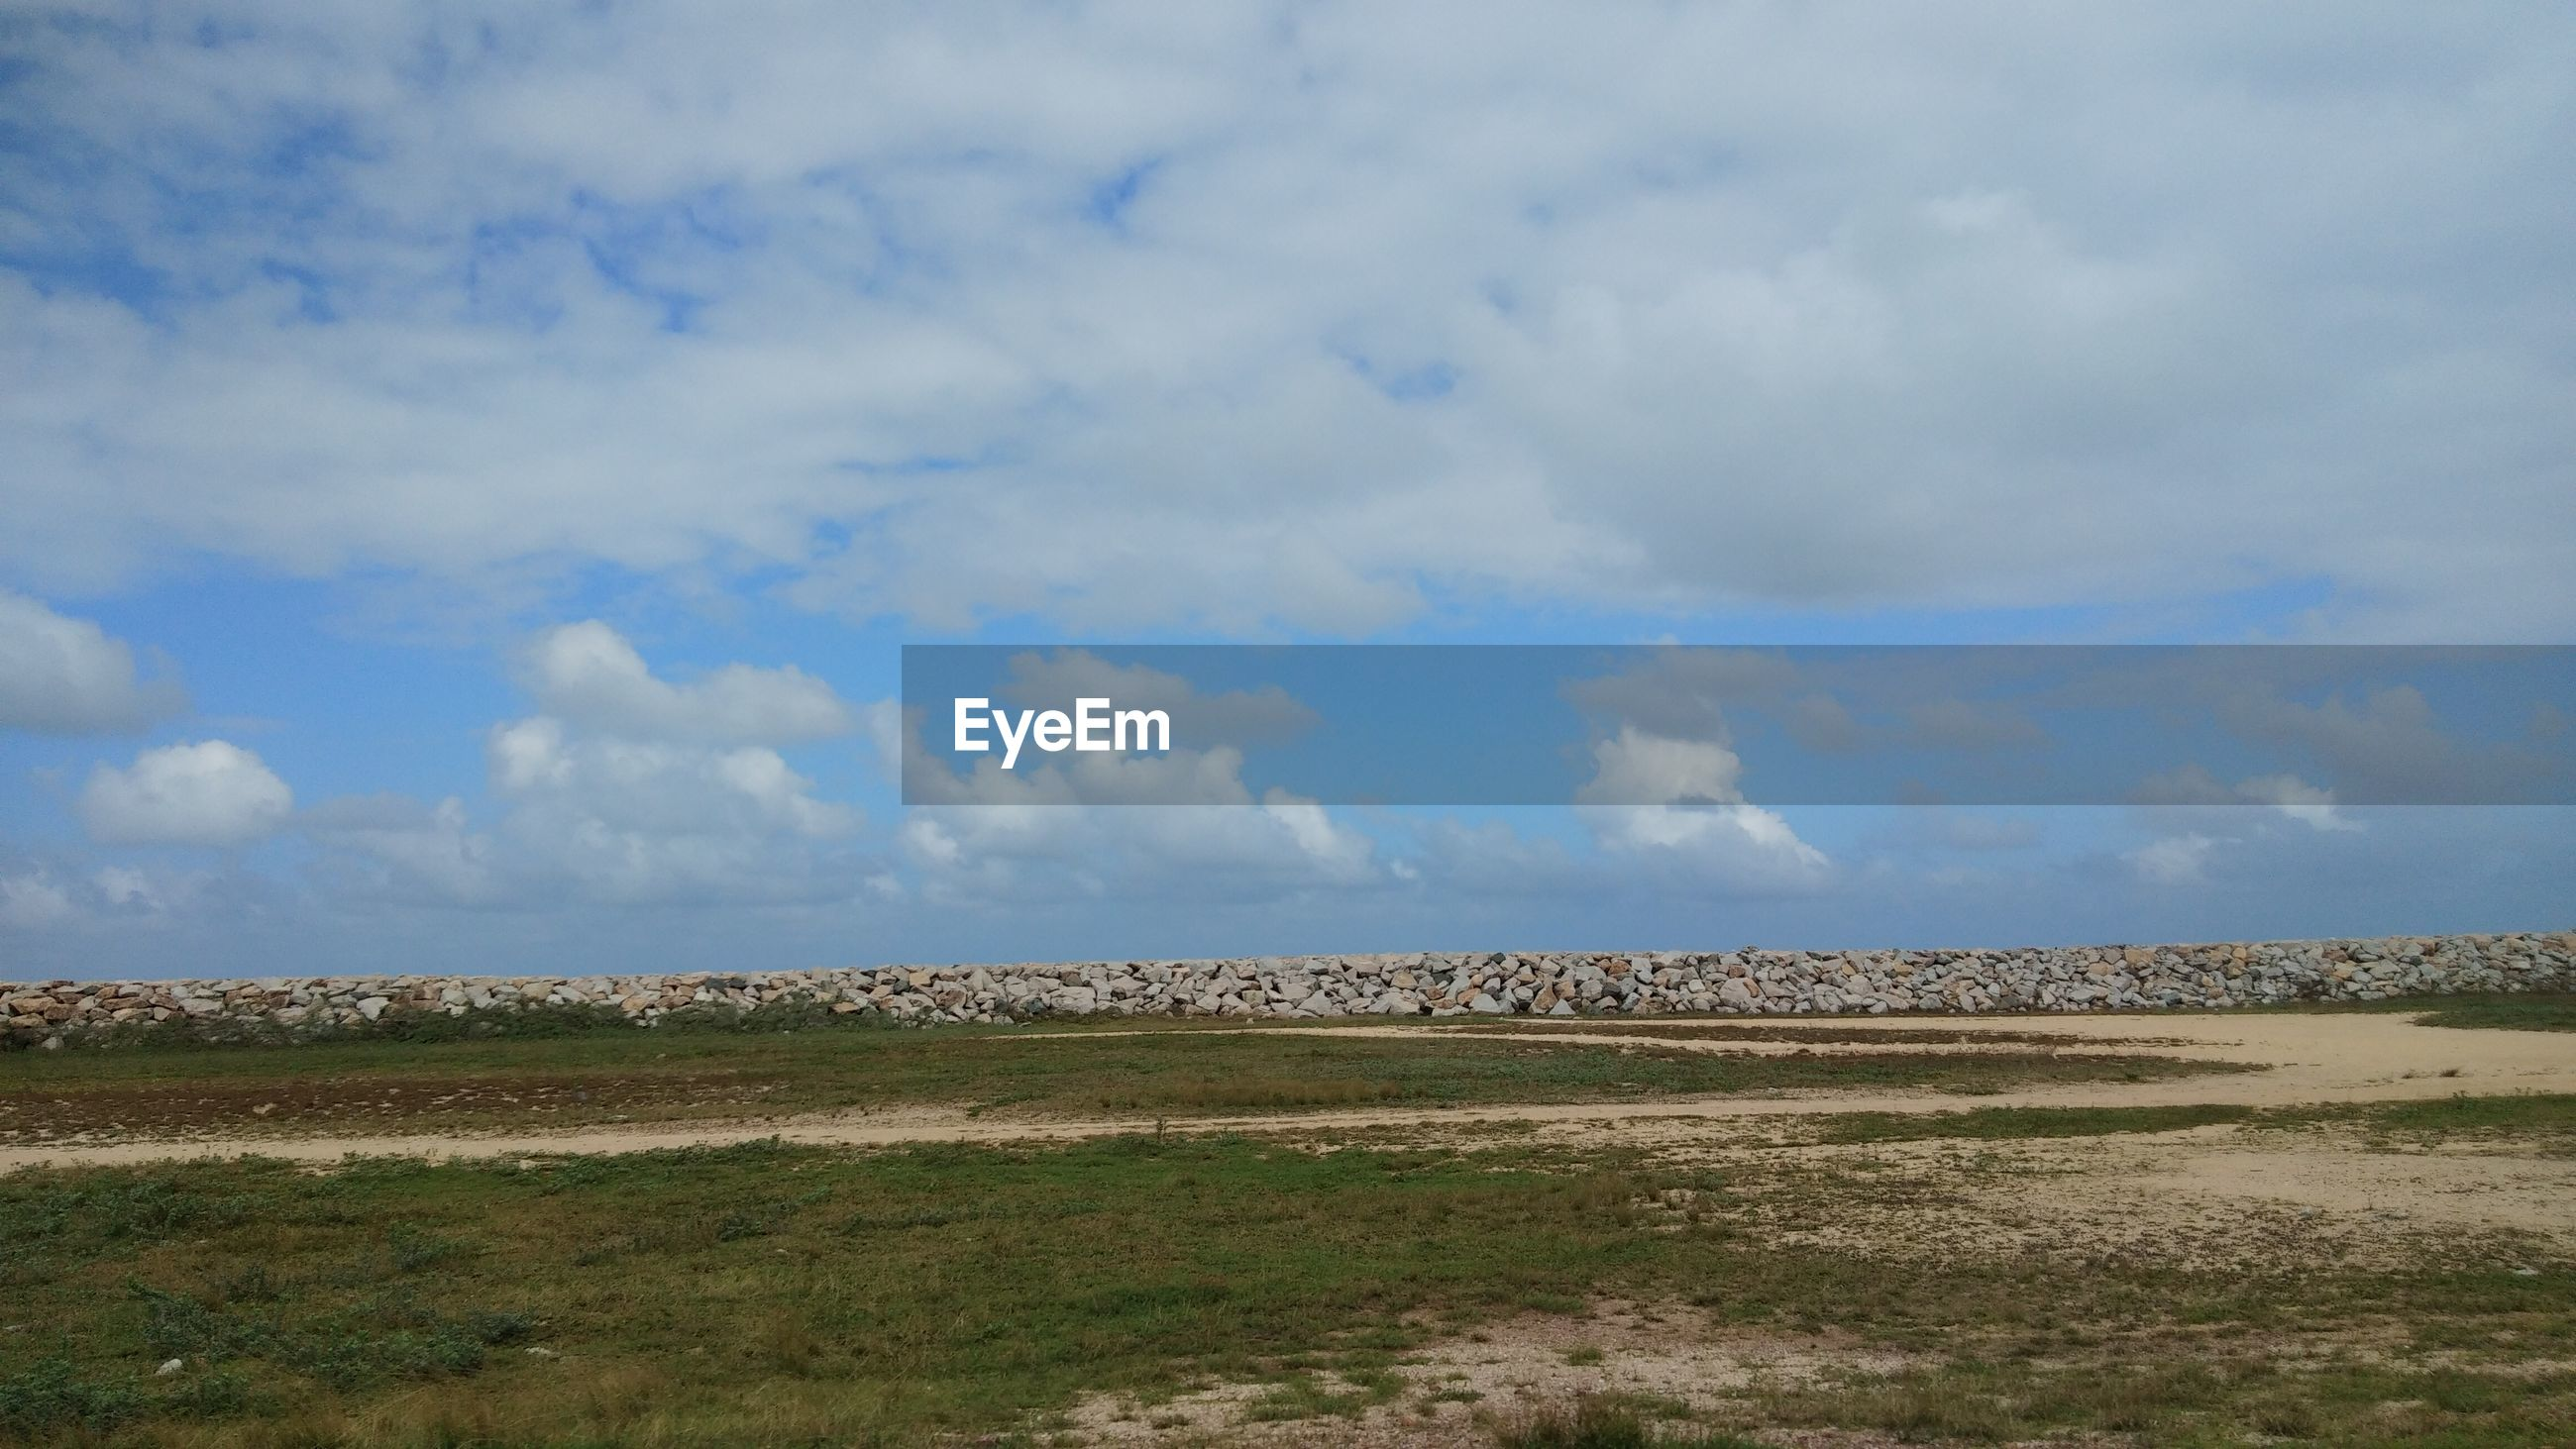 SCENIC VIEW OF BARREN LAND AGAINST SKY